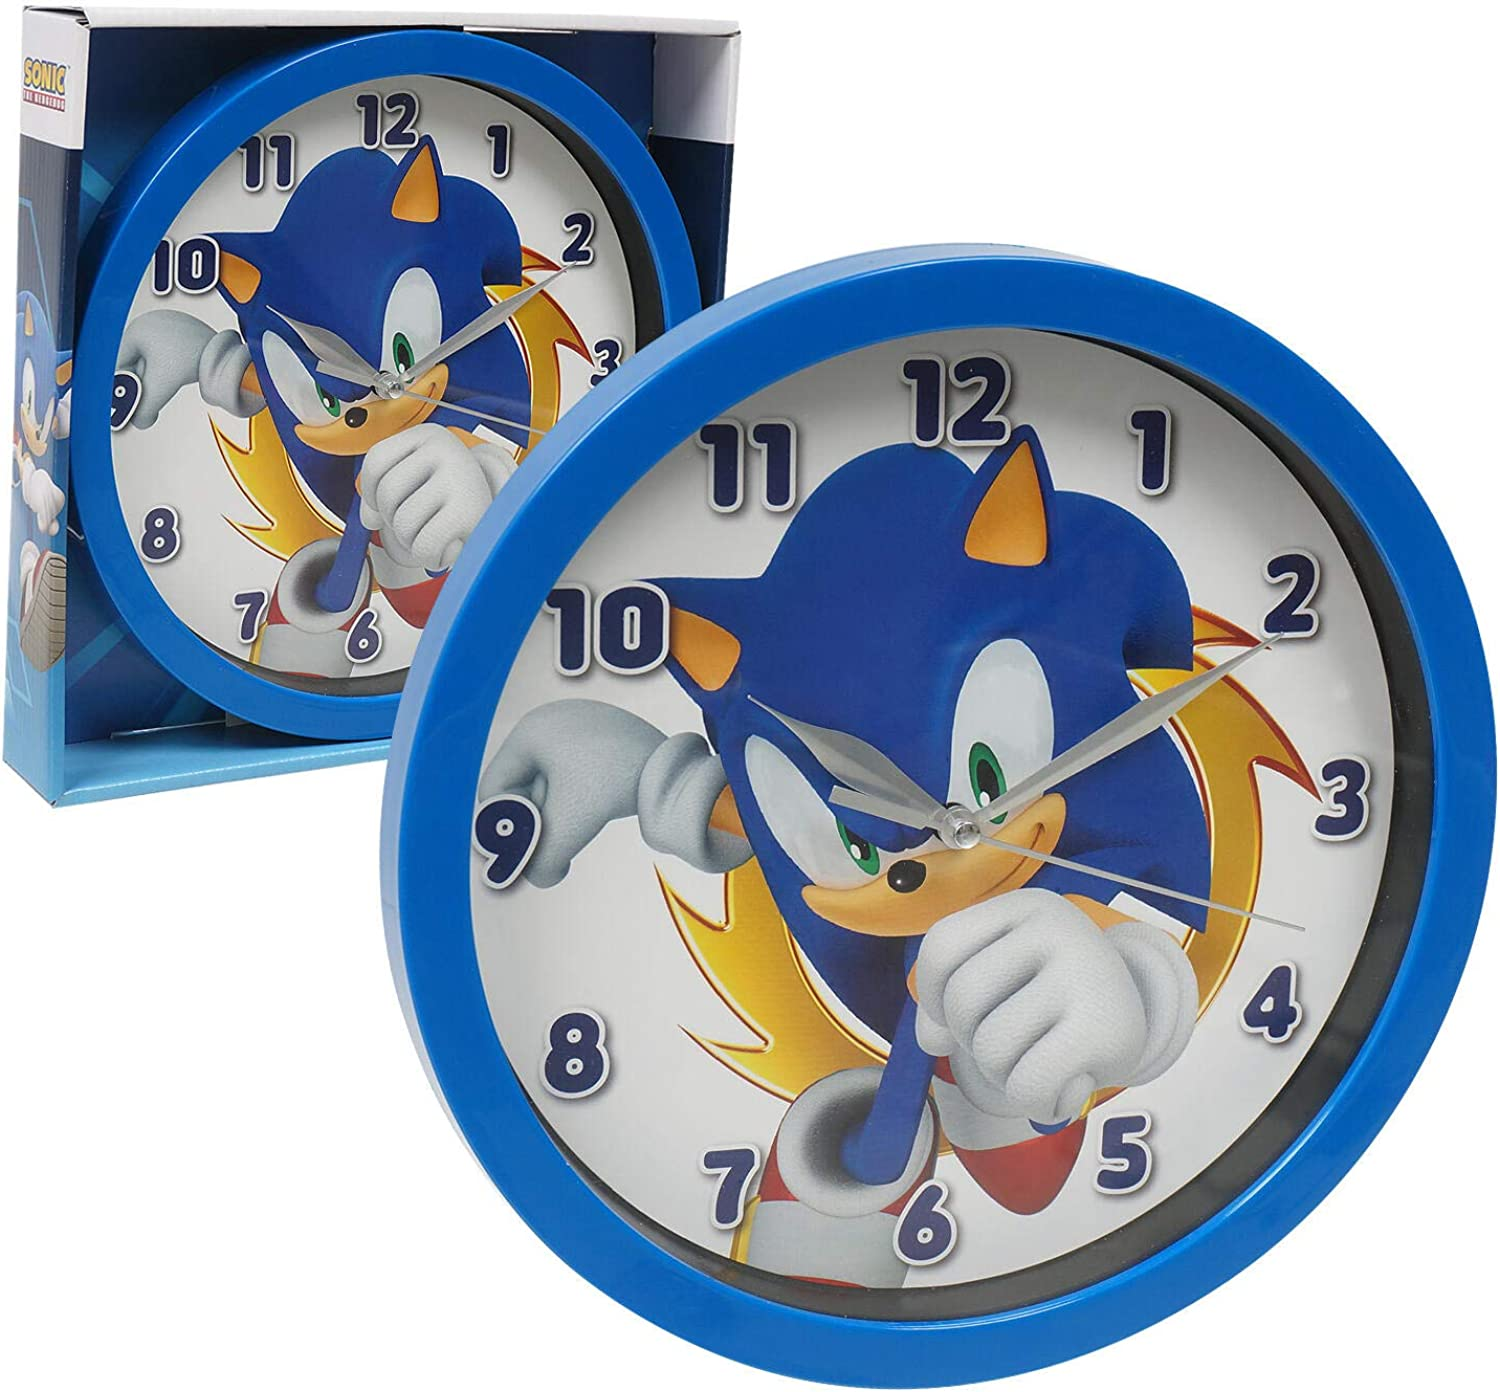 Sonic The Hedgehog Frame 9.5 inches Wall Clock Office Home Wall Decor